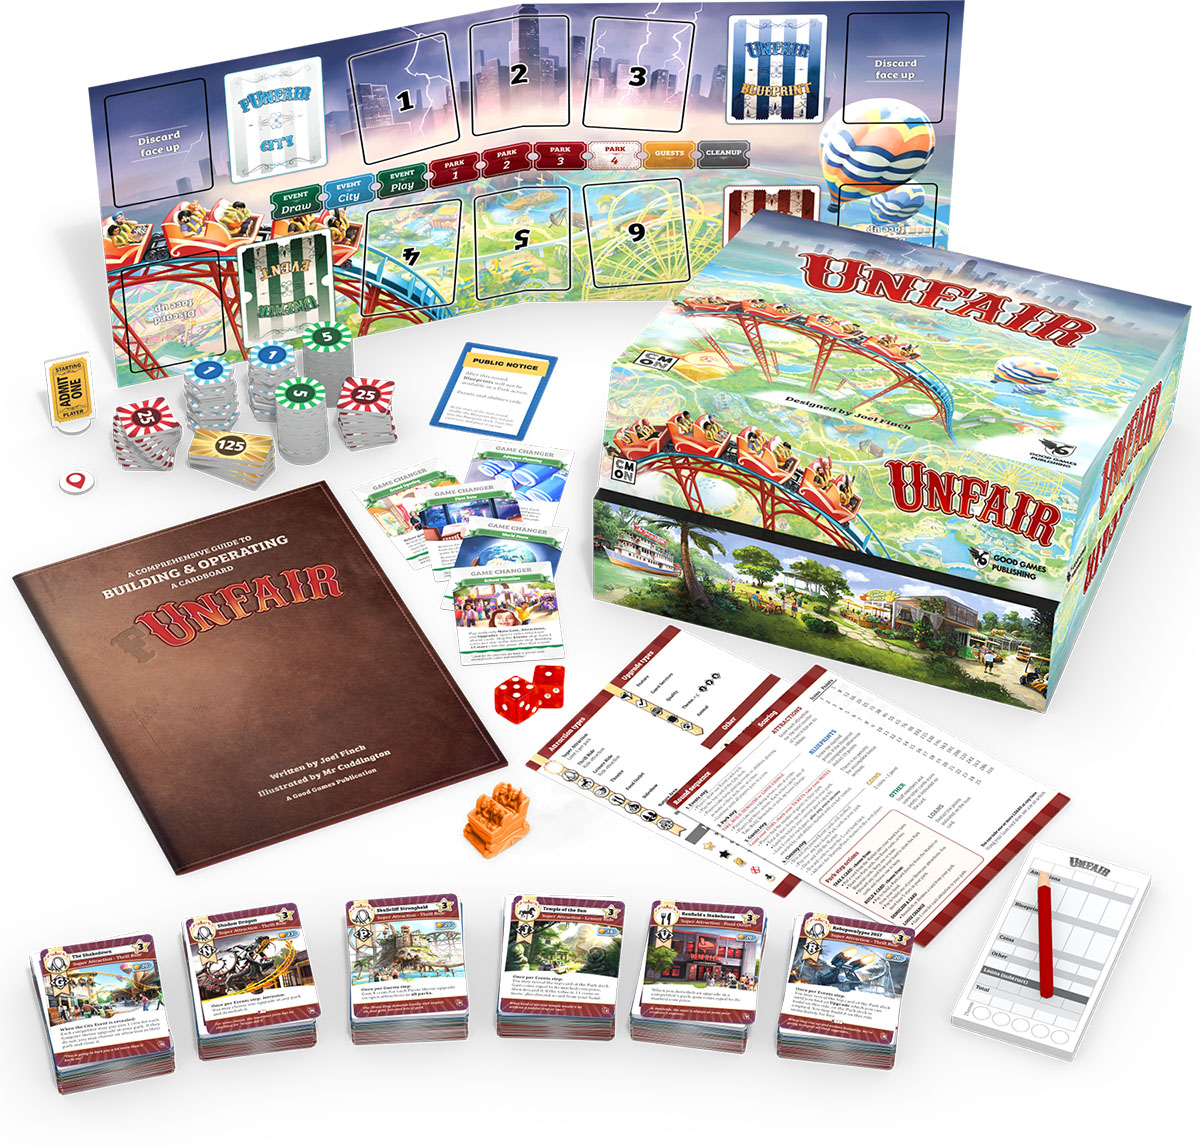 A Lire : Ludothèque de l'association - Achat de jeux 2018 Whats-in-the-box